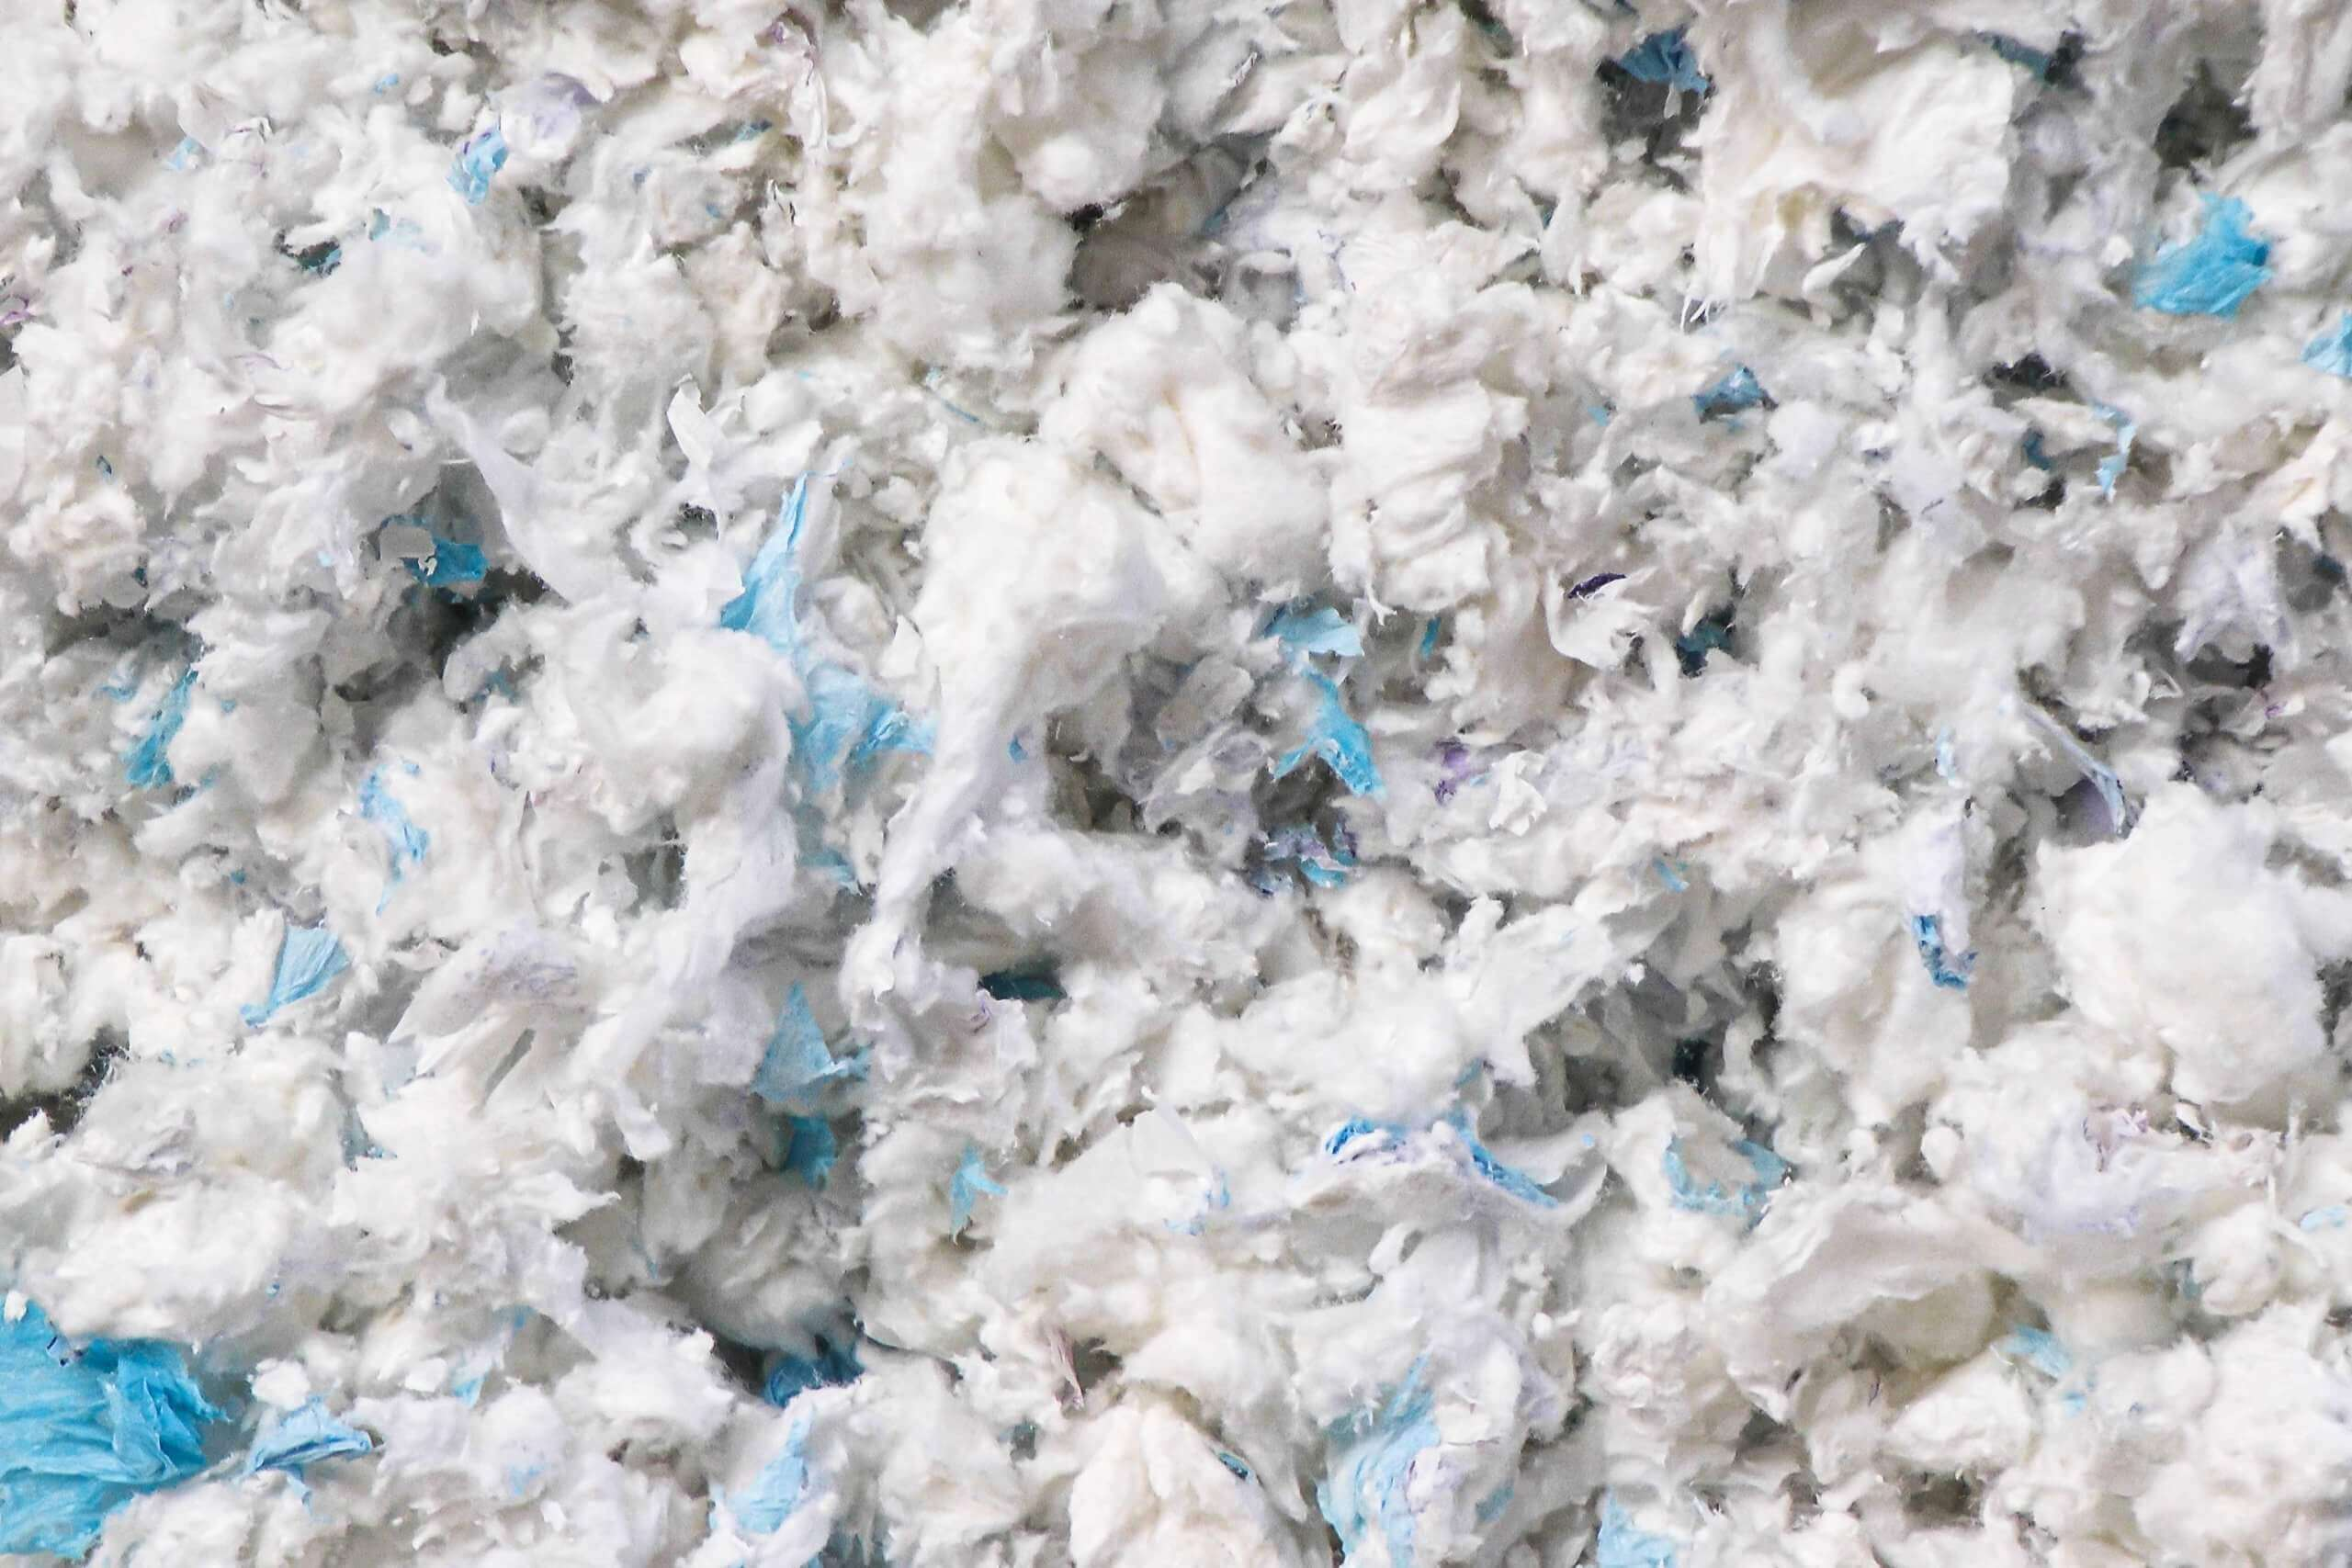 Shredding of Diapers makes the fibers recycable